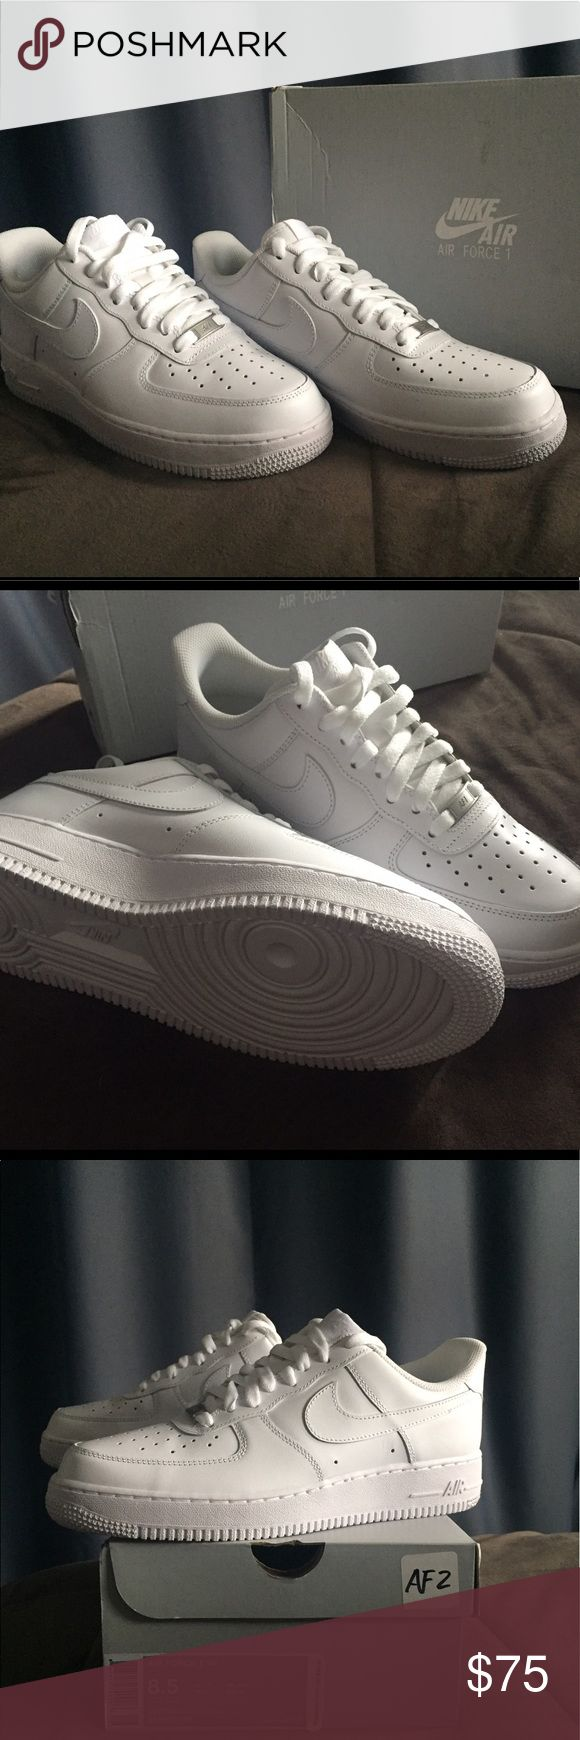 Brand New, White, Nike AF1 mens size 8.5. Classic white Nike Air Force